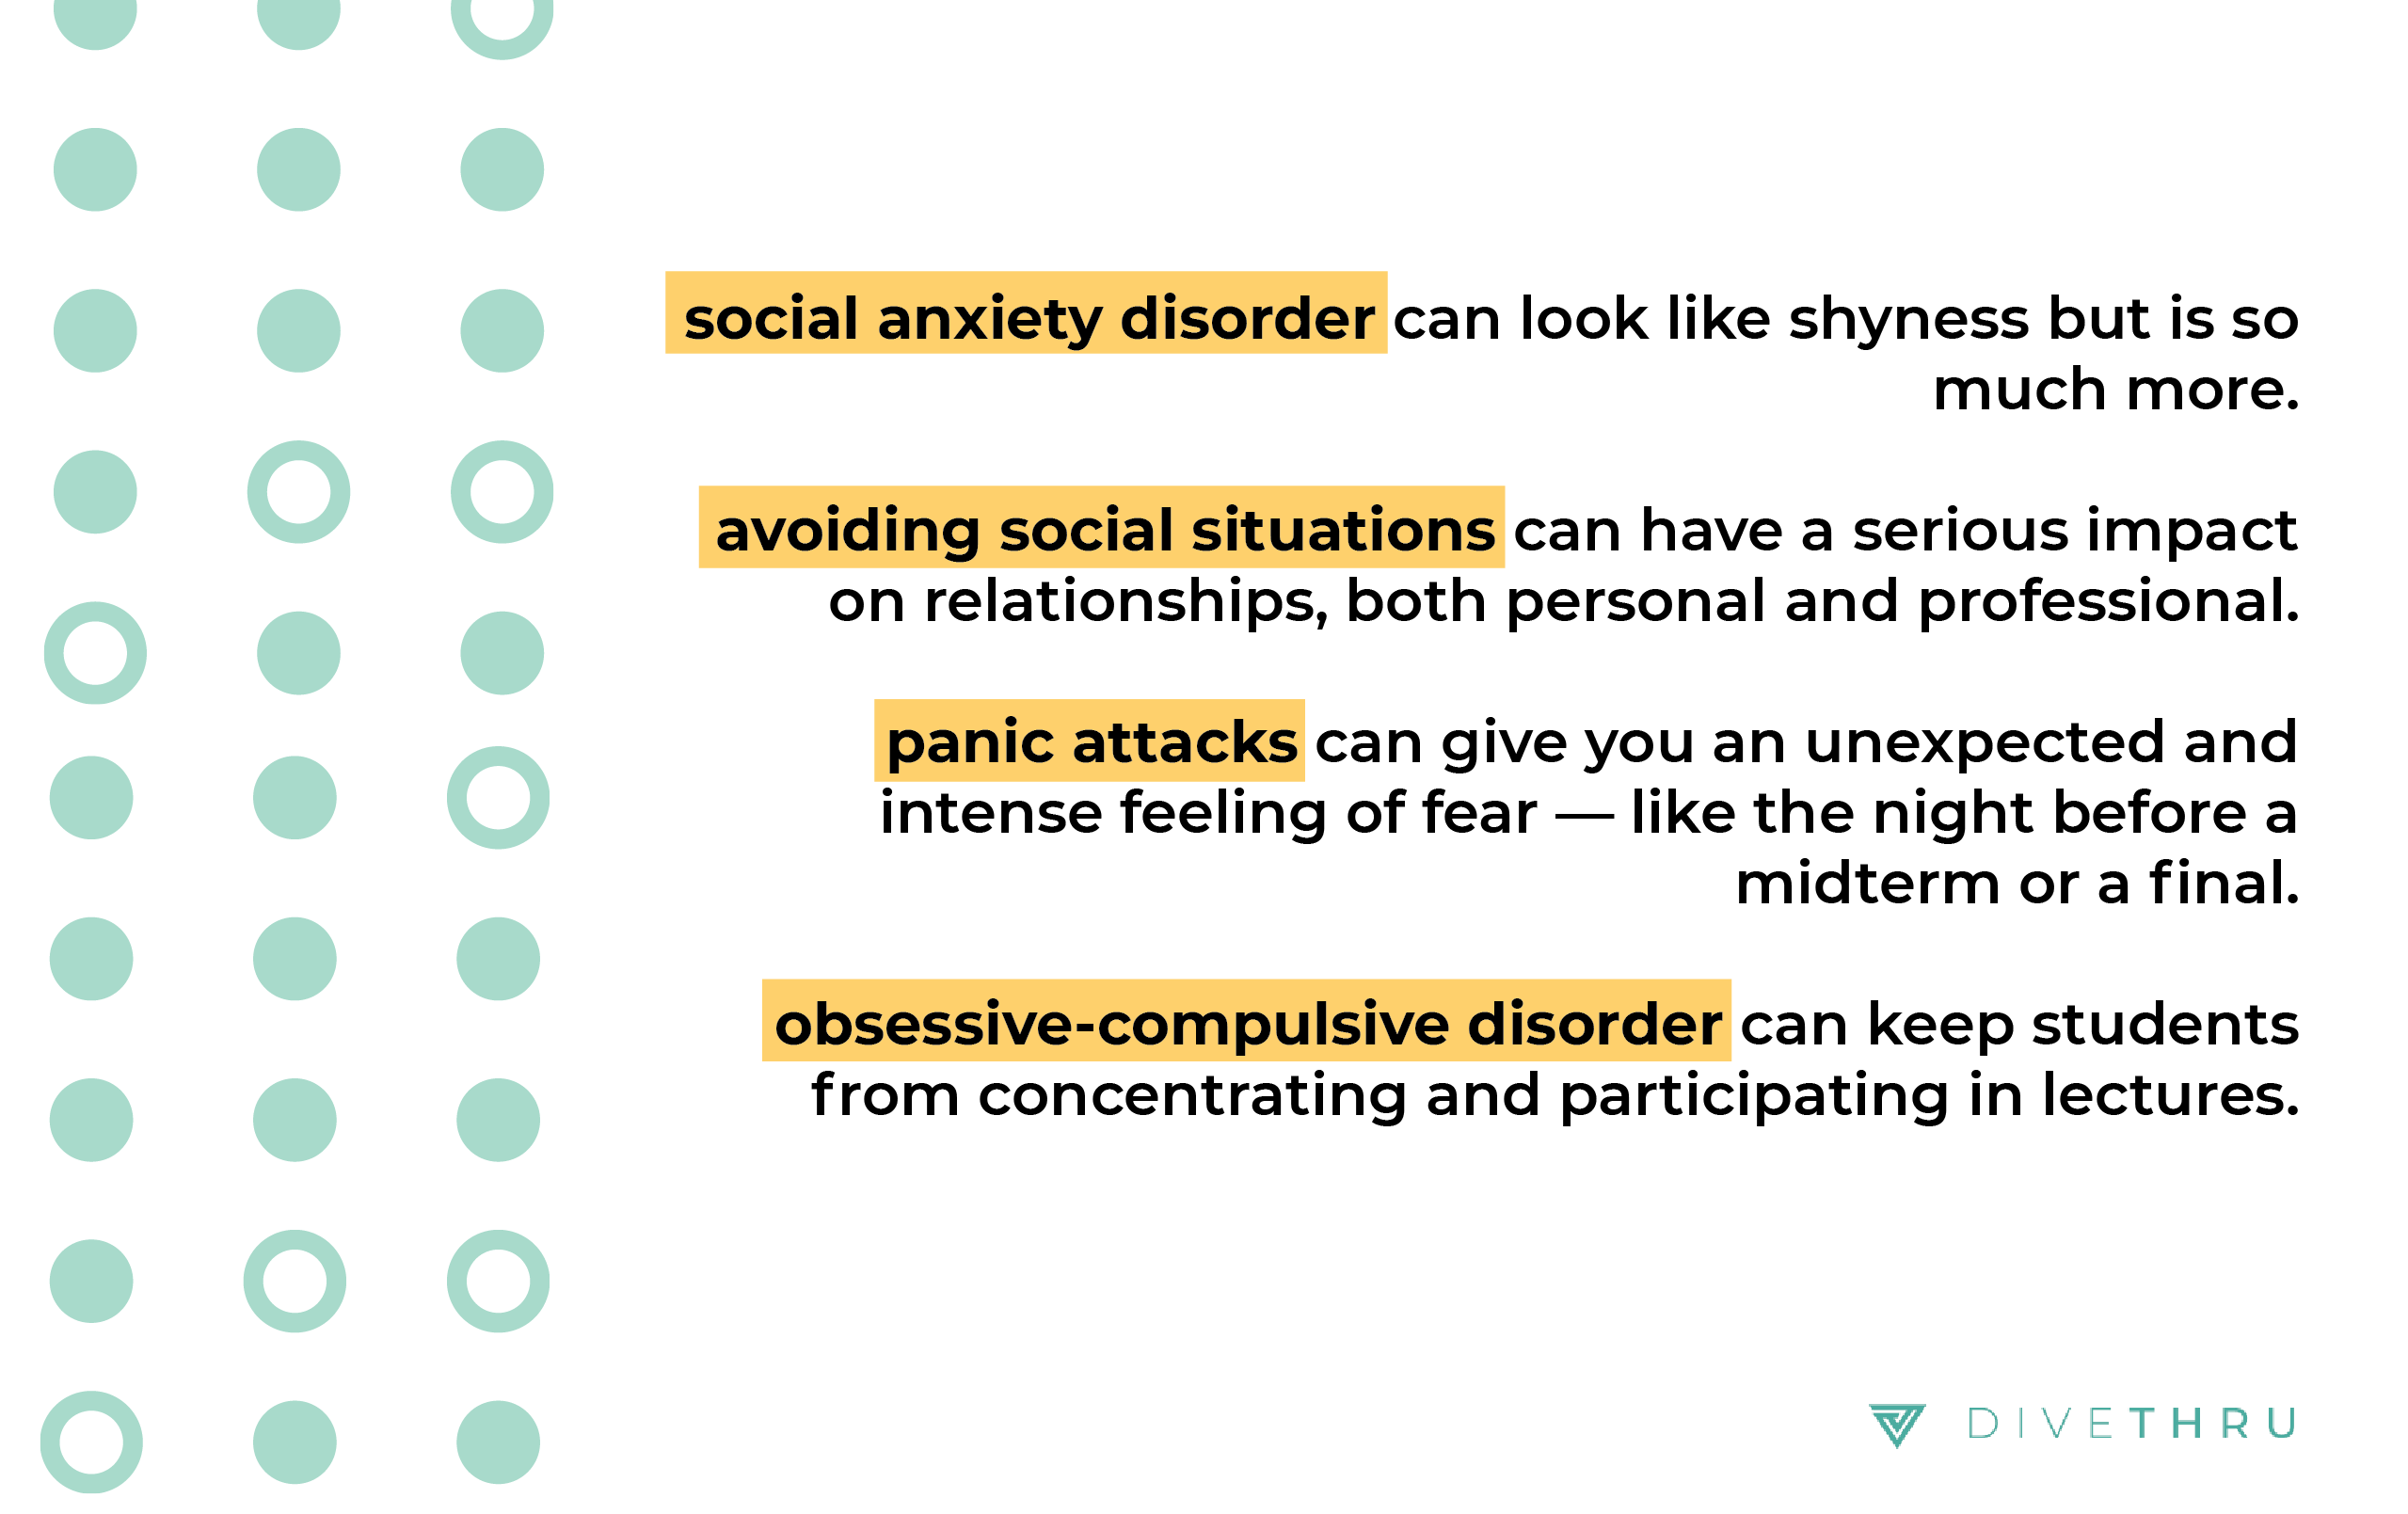 text: social anxiety disorder can look like shyness but it's so much more. avoiding social situations can have a serious impact on relationships, both personal and professional.  panic attacks can give you an intense and unexpected feeling of fear, like the night before a midterm exam. obsessive compulsive disorder can keep students from concentrating and participating in lectures.